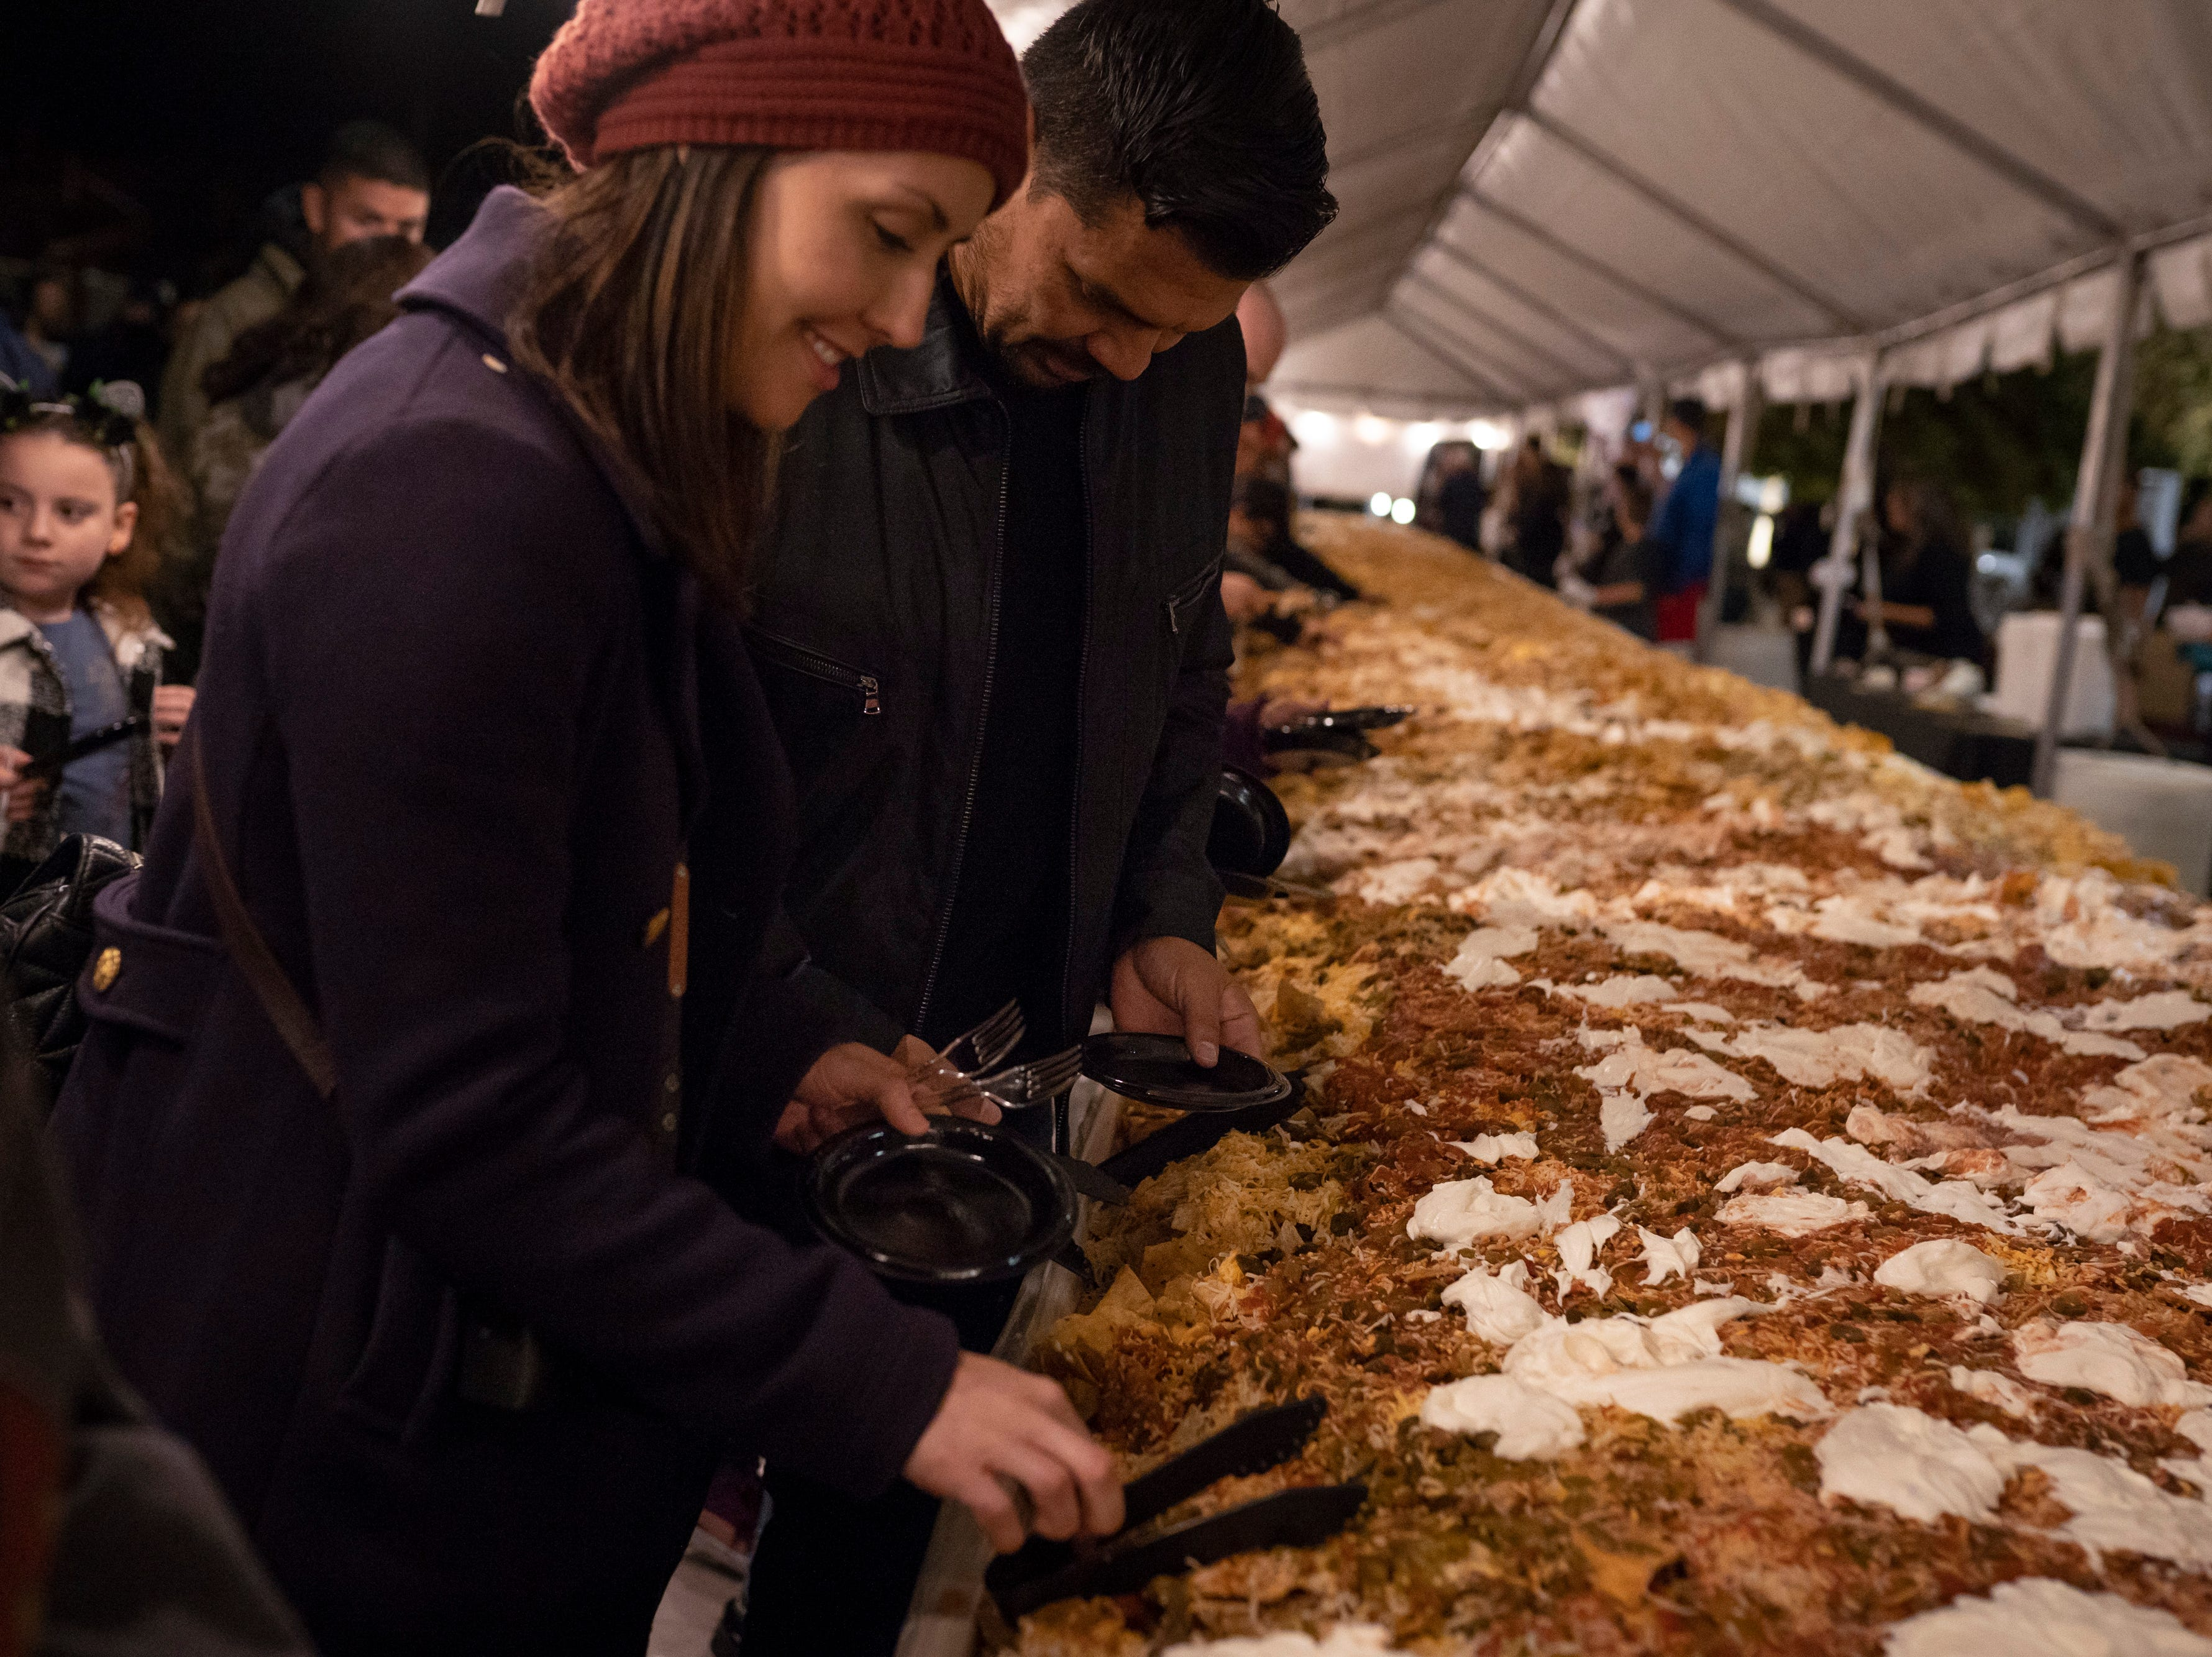 Visitors to Noche de Nachos take the first plates of nachos after Las Cruces unofficially set the record for world's largest serving of nachos Saturday, Nov. 10, 2018, in downtown Las Cruces.